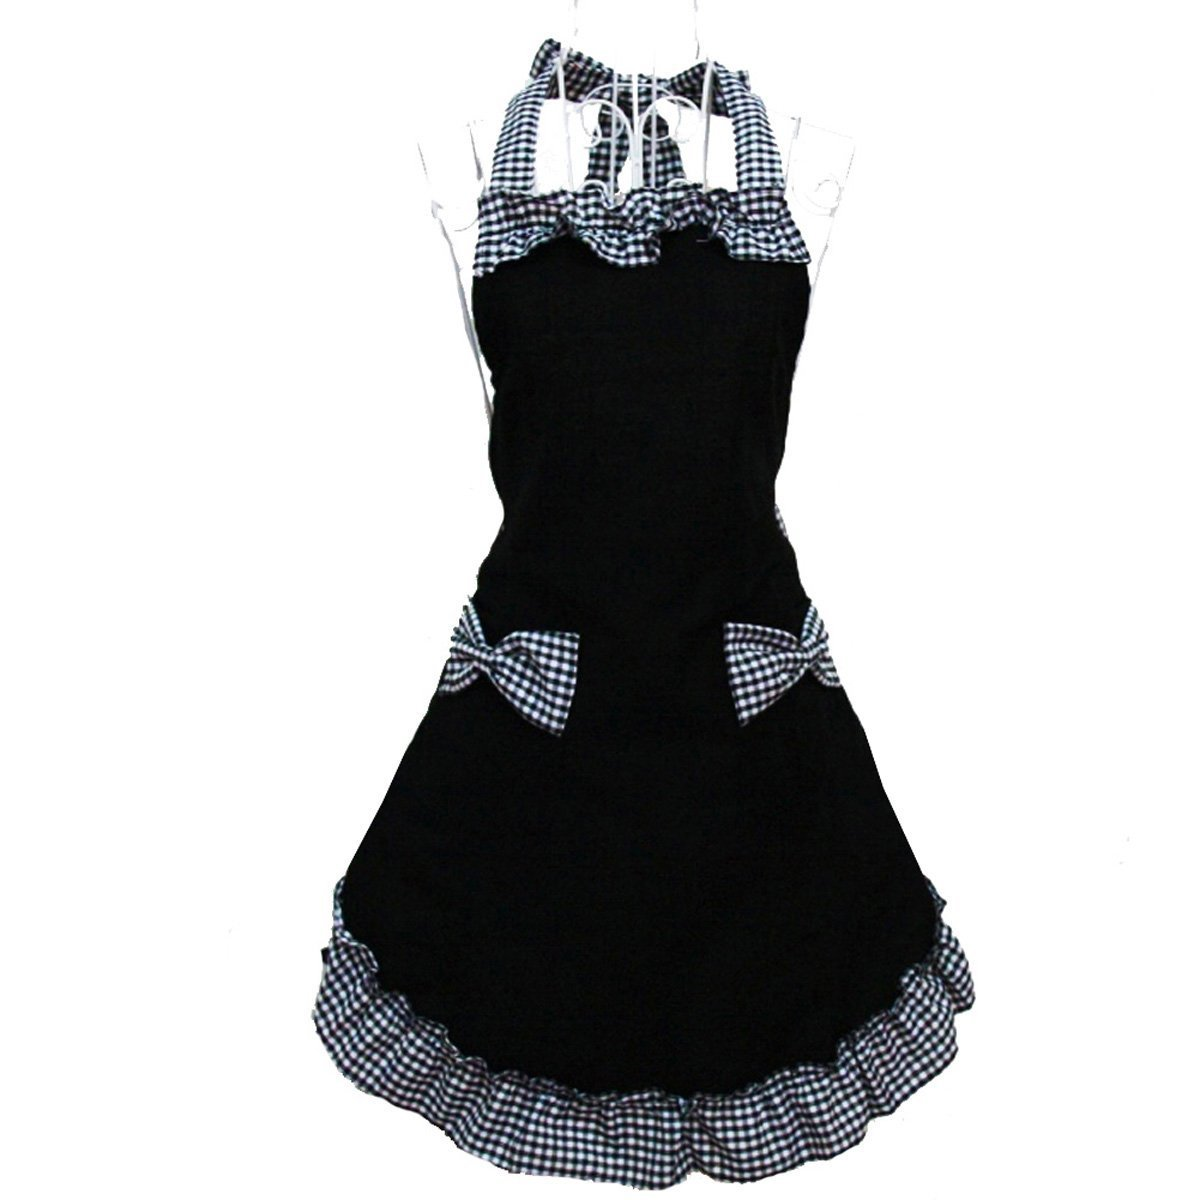 Hyzrz Cute Retro Lovely Vintage Lady's Kitchen Fashion Flirty Women's Aprons with Pockets Black Patterns for Mother's Day Gift 1